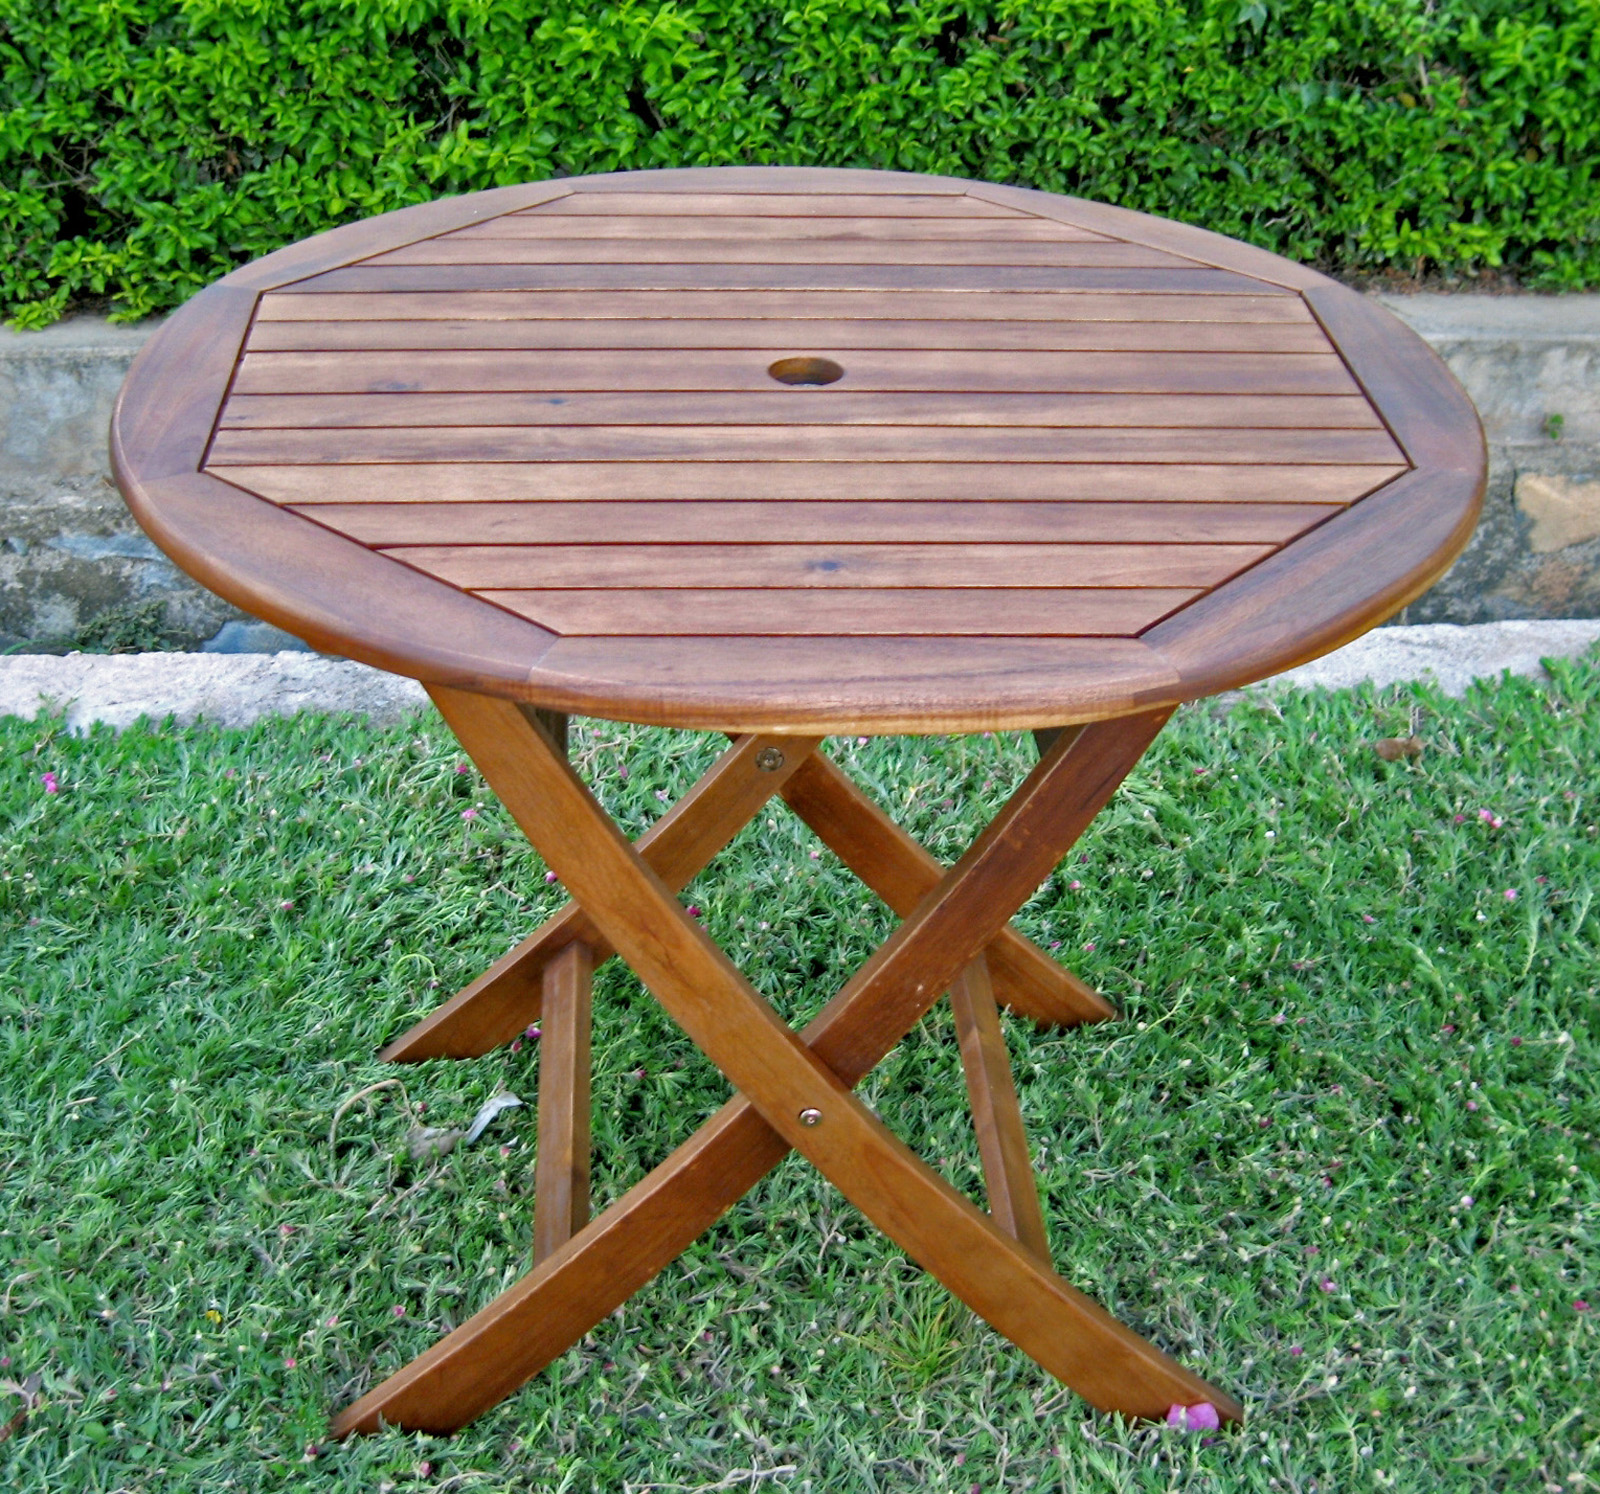 Inch round wooden folding table with curved legs in